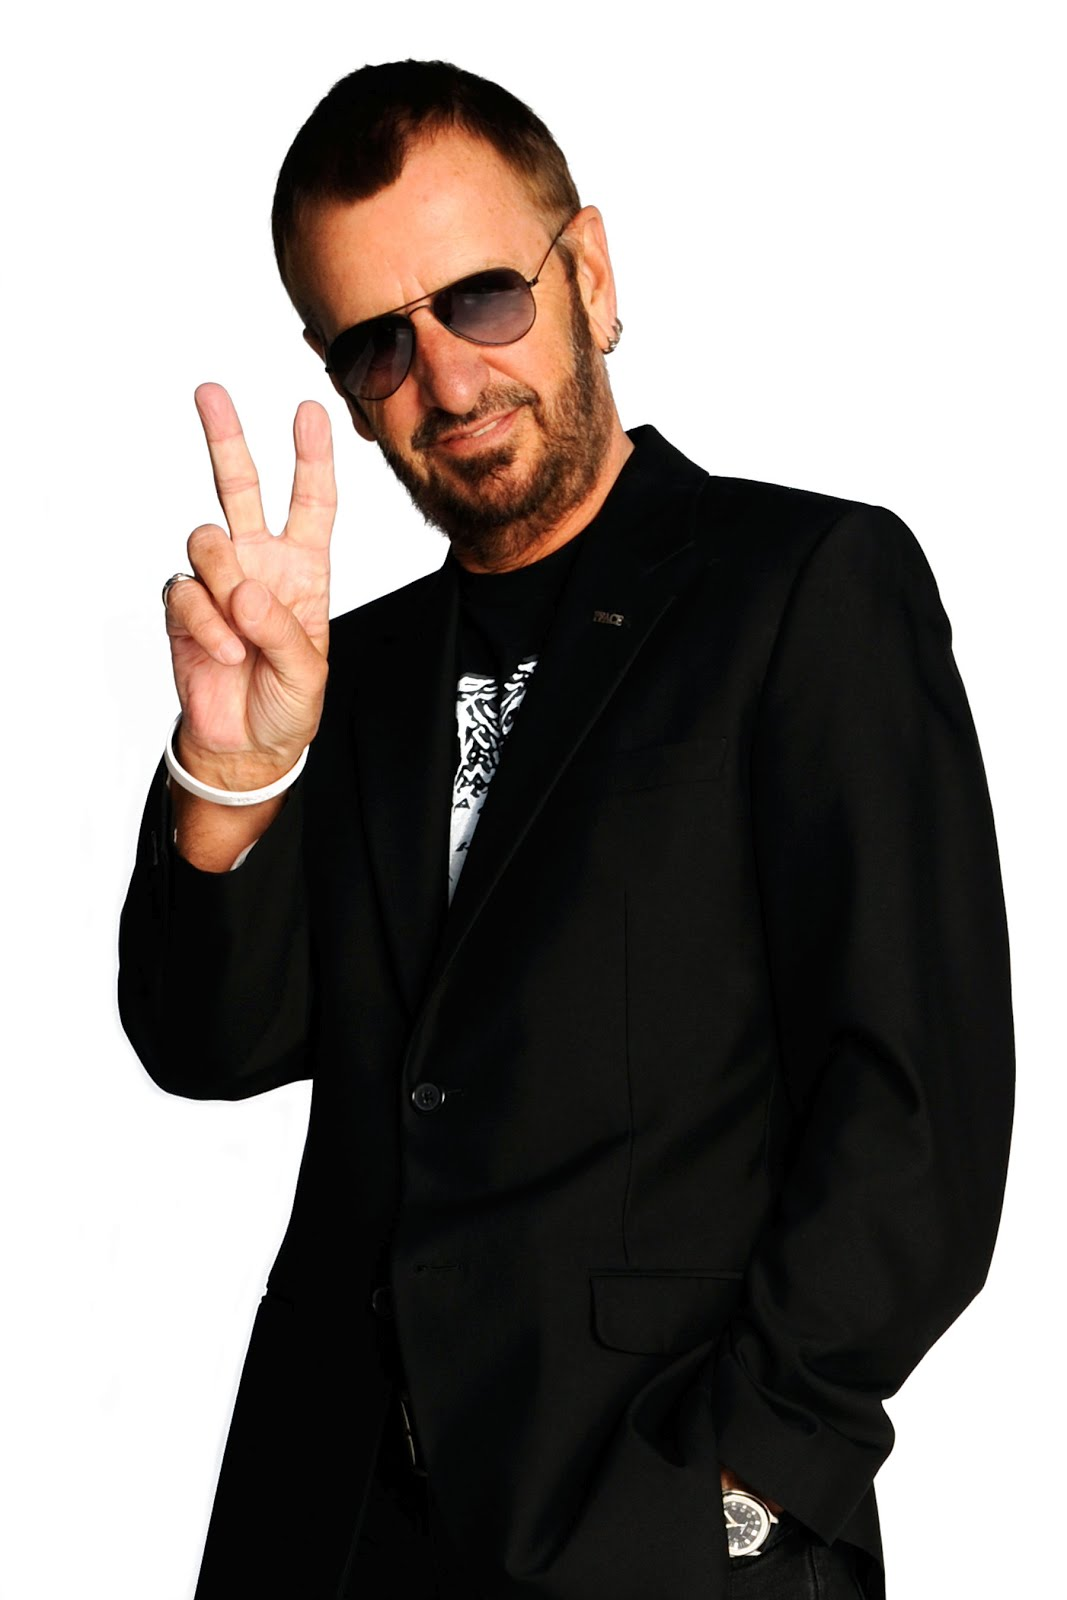 I Have Many More Images Of Ringo Starr Wearing His Patek Philippe And As Time Permits Will Publish Them In The Future If You Examine Closely Zoom